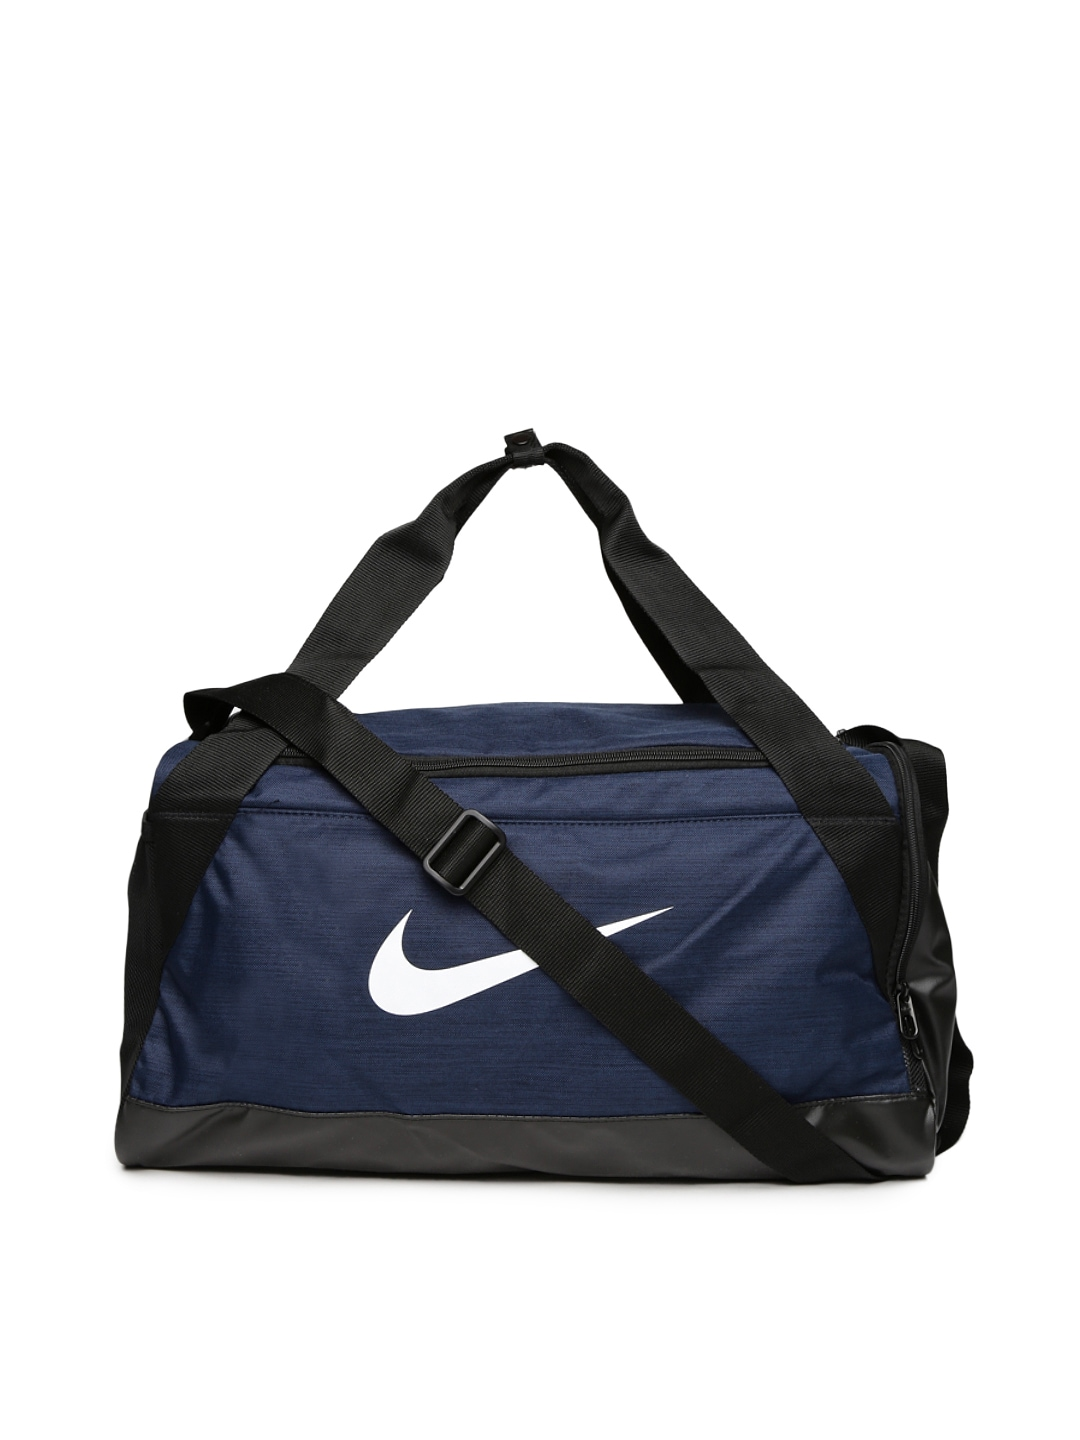 e9b34fde4349 Nike Gym Bags - Buy Nike Gym Bags online in India